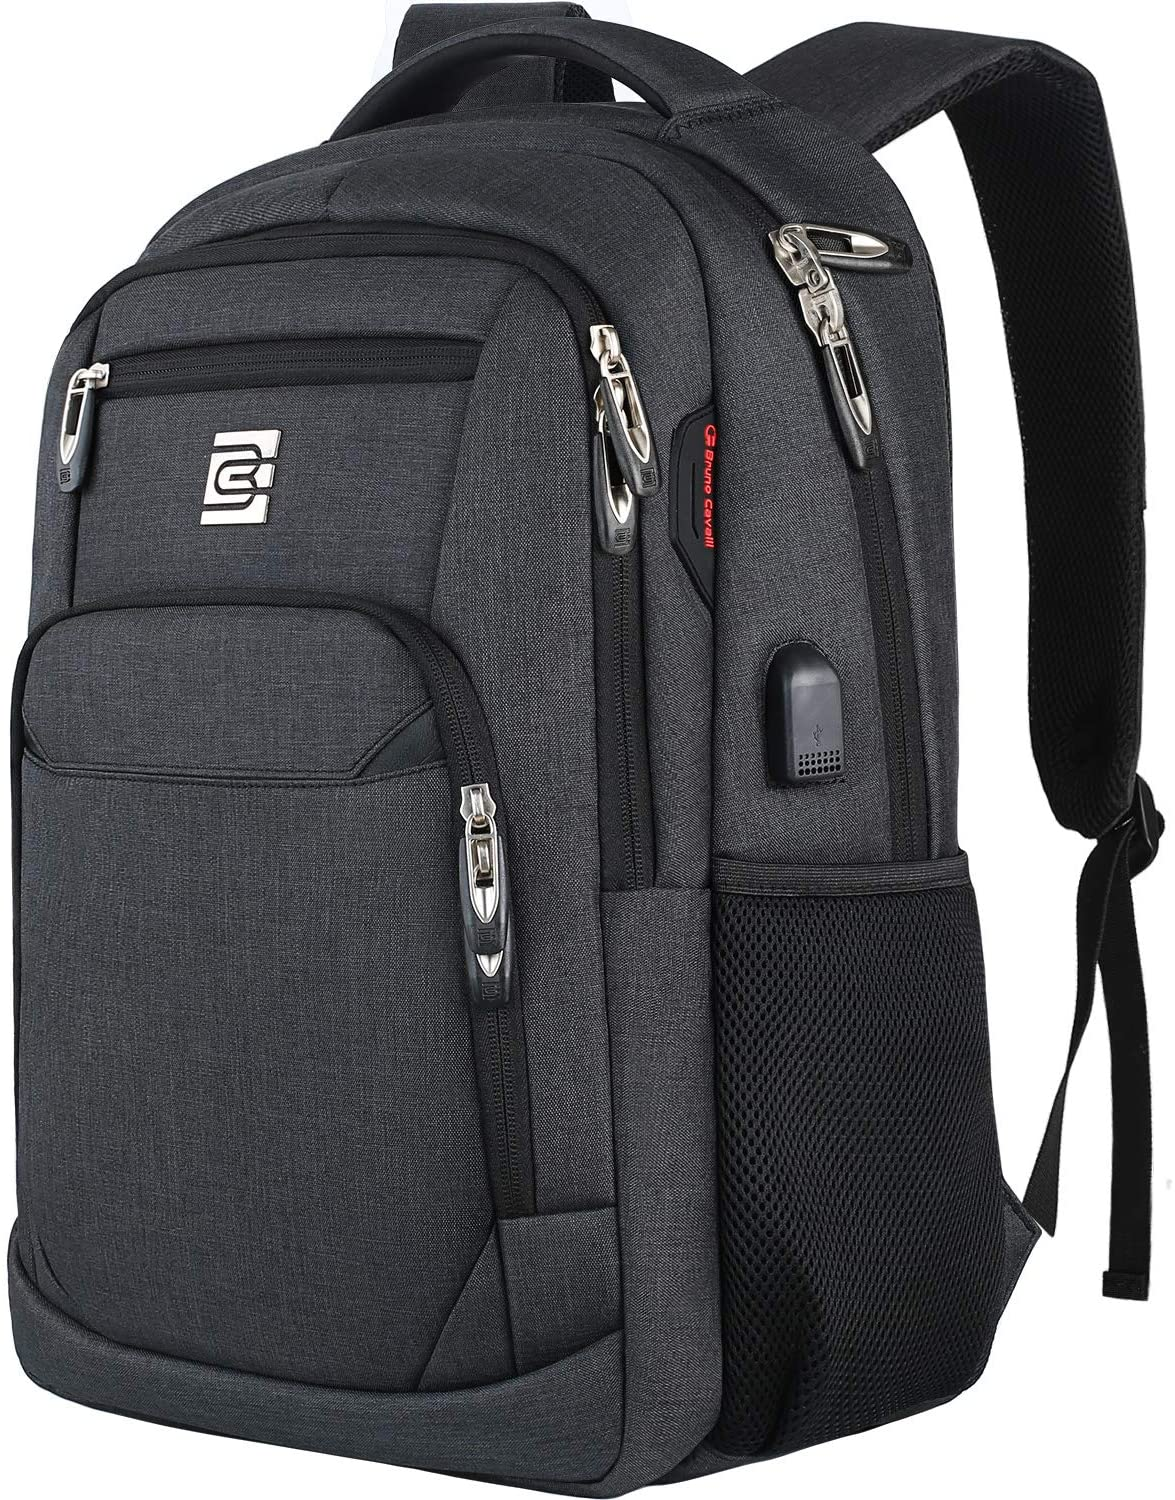 Save $10 on Laptop Backpack,Business Anti Theft Laptops Backpack